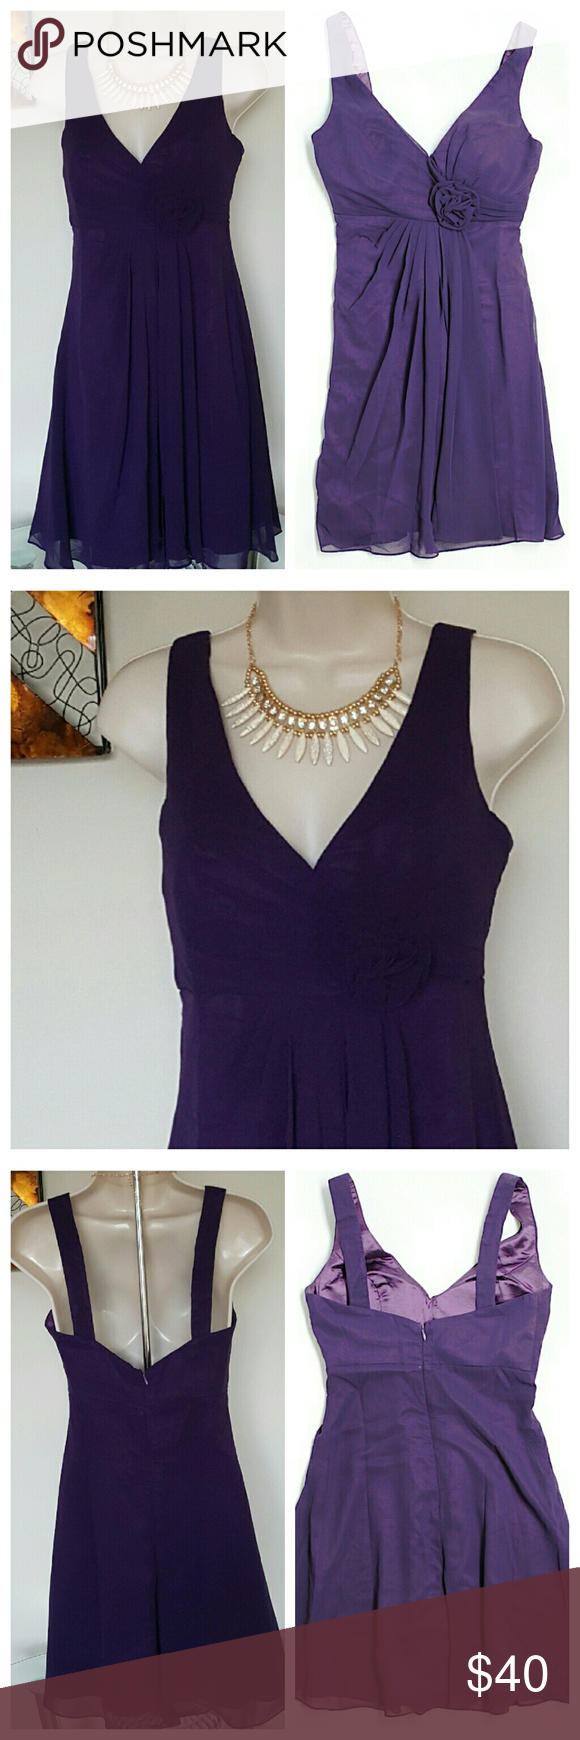 """Ever-Pretty Dark Purple Cocktail Dress - Sz 6 New with tags. Ever-Pretty brand cocktail dress in size 6. Sleeveless, A-line silhouette, v-neck with ruched empire waist topped with rose. Back zip closure. Sewn  in light foam bra inserts. Perfect for wedding, dance or cocktail party. Approximate measurements: 16.5"""" Relaxed Bust (36.5"""" Chest), 27"""" Empire Waist, 35"""" Length from shoulder top to bottom hemline. 100% Polyester. Ever-Pretty Dresses"""